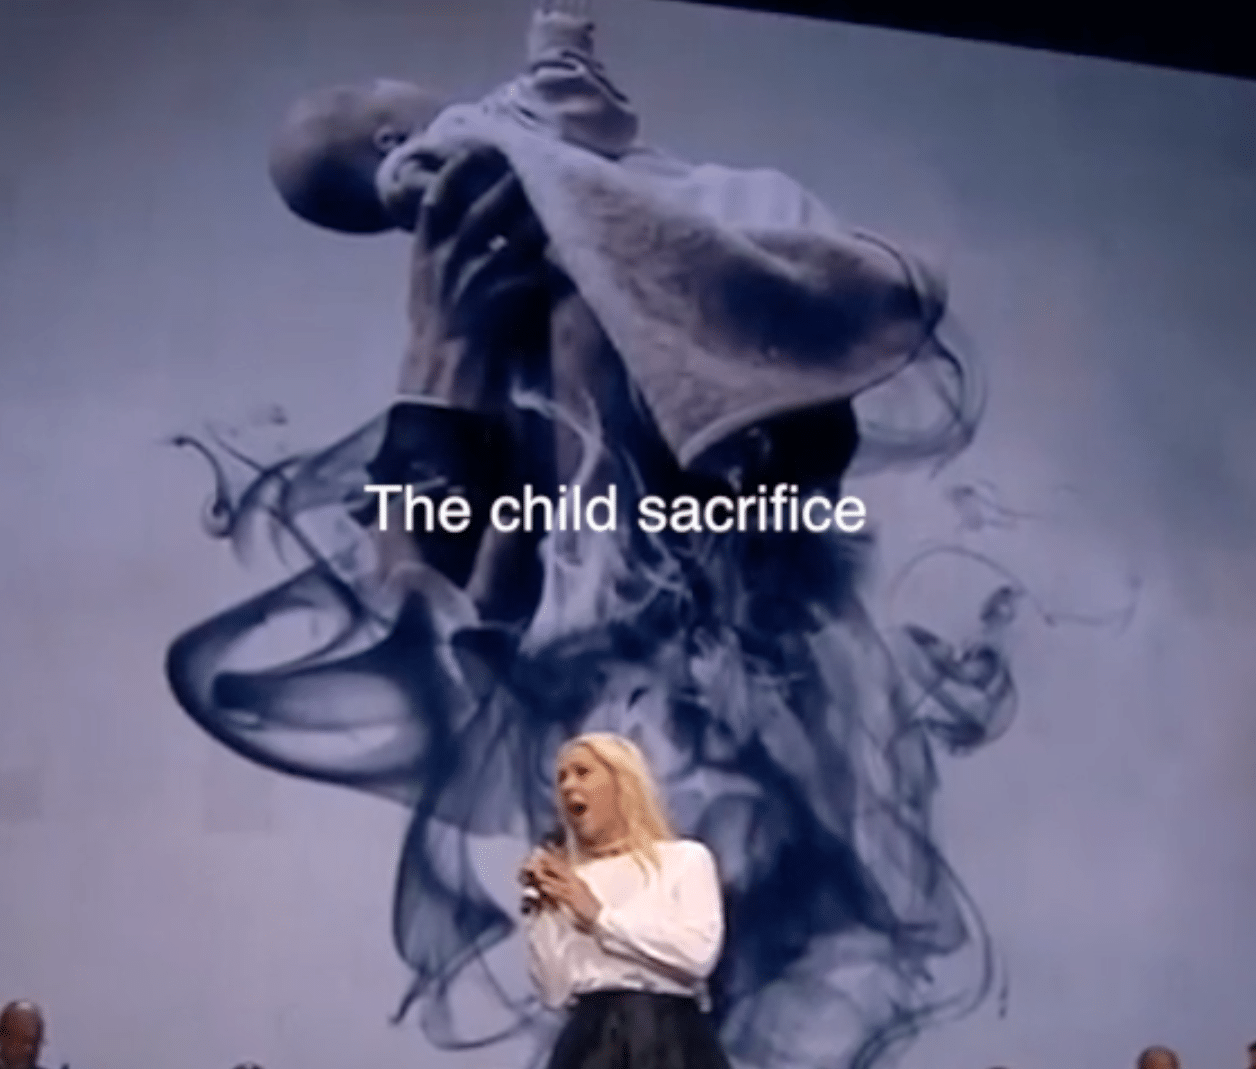 Pope Francis Child Sacrifice